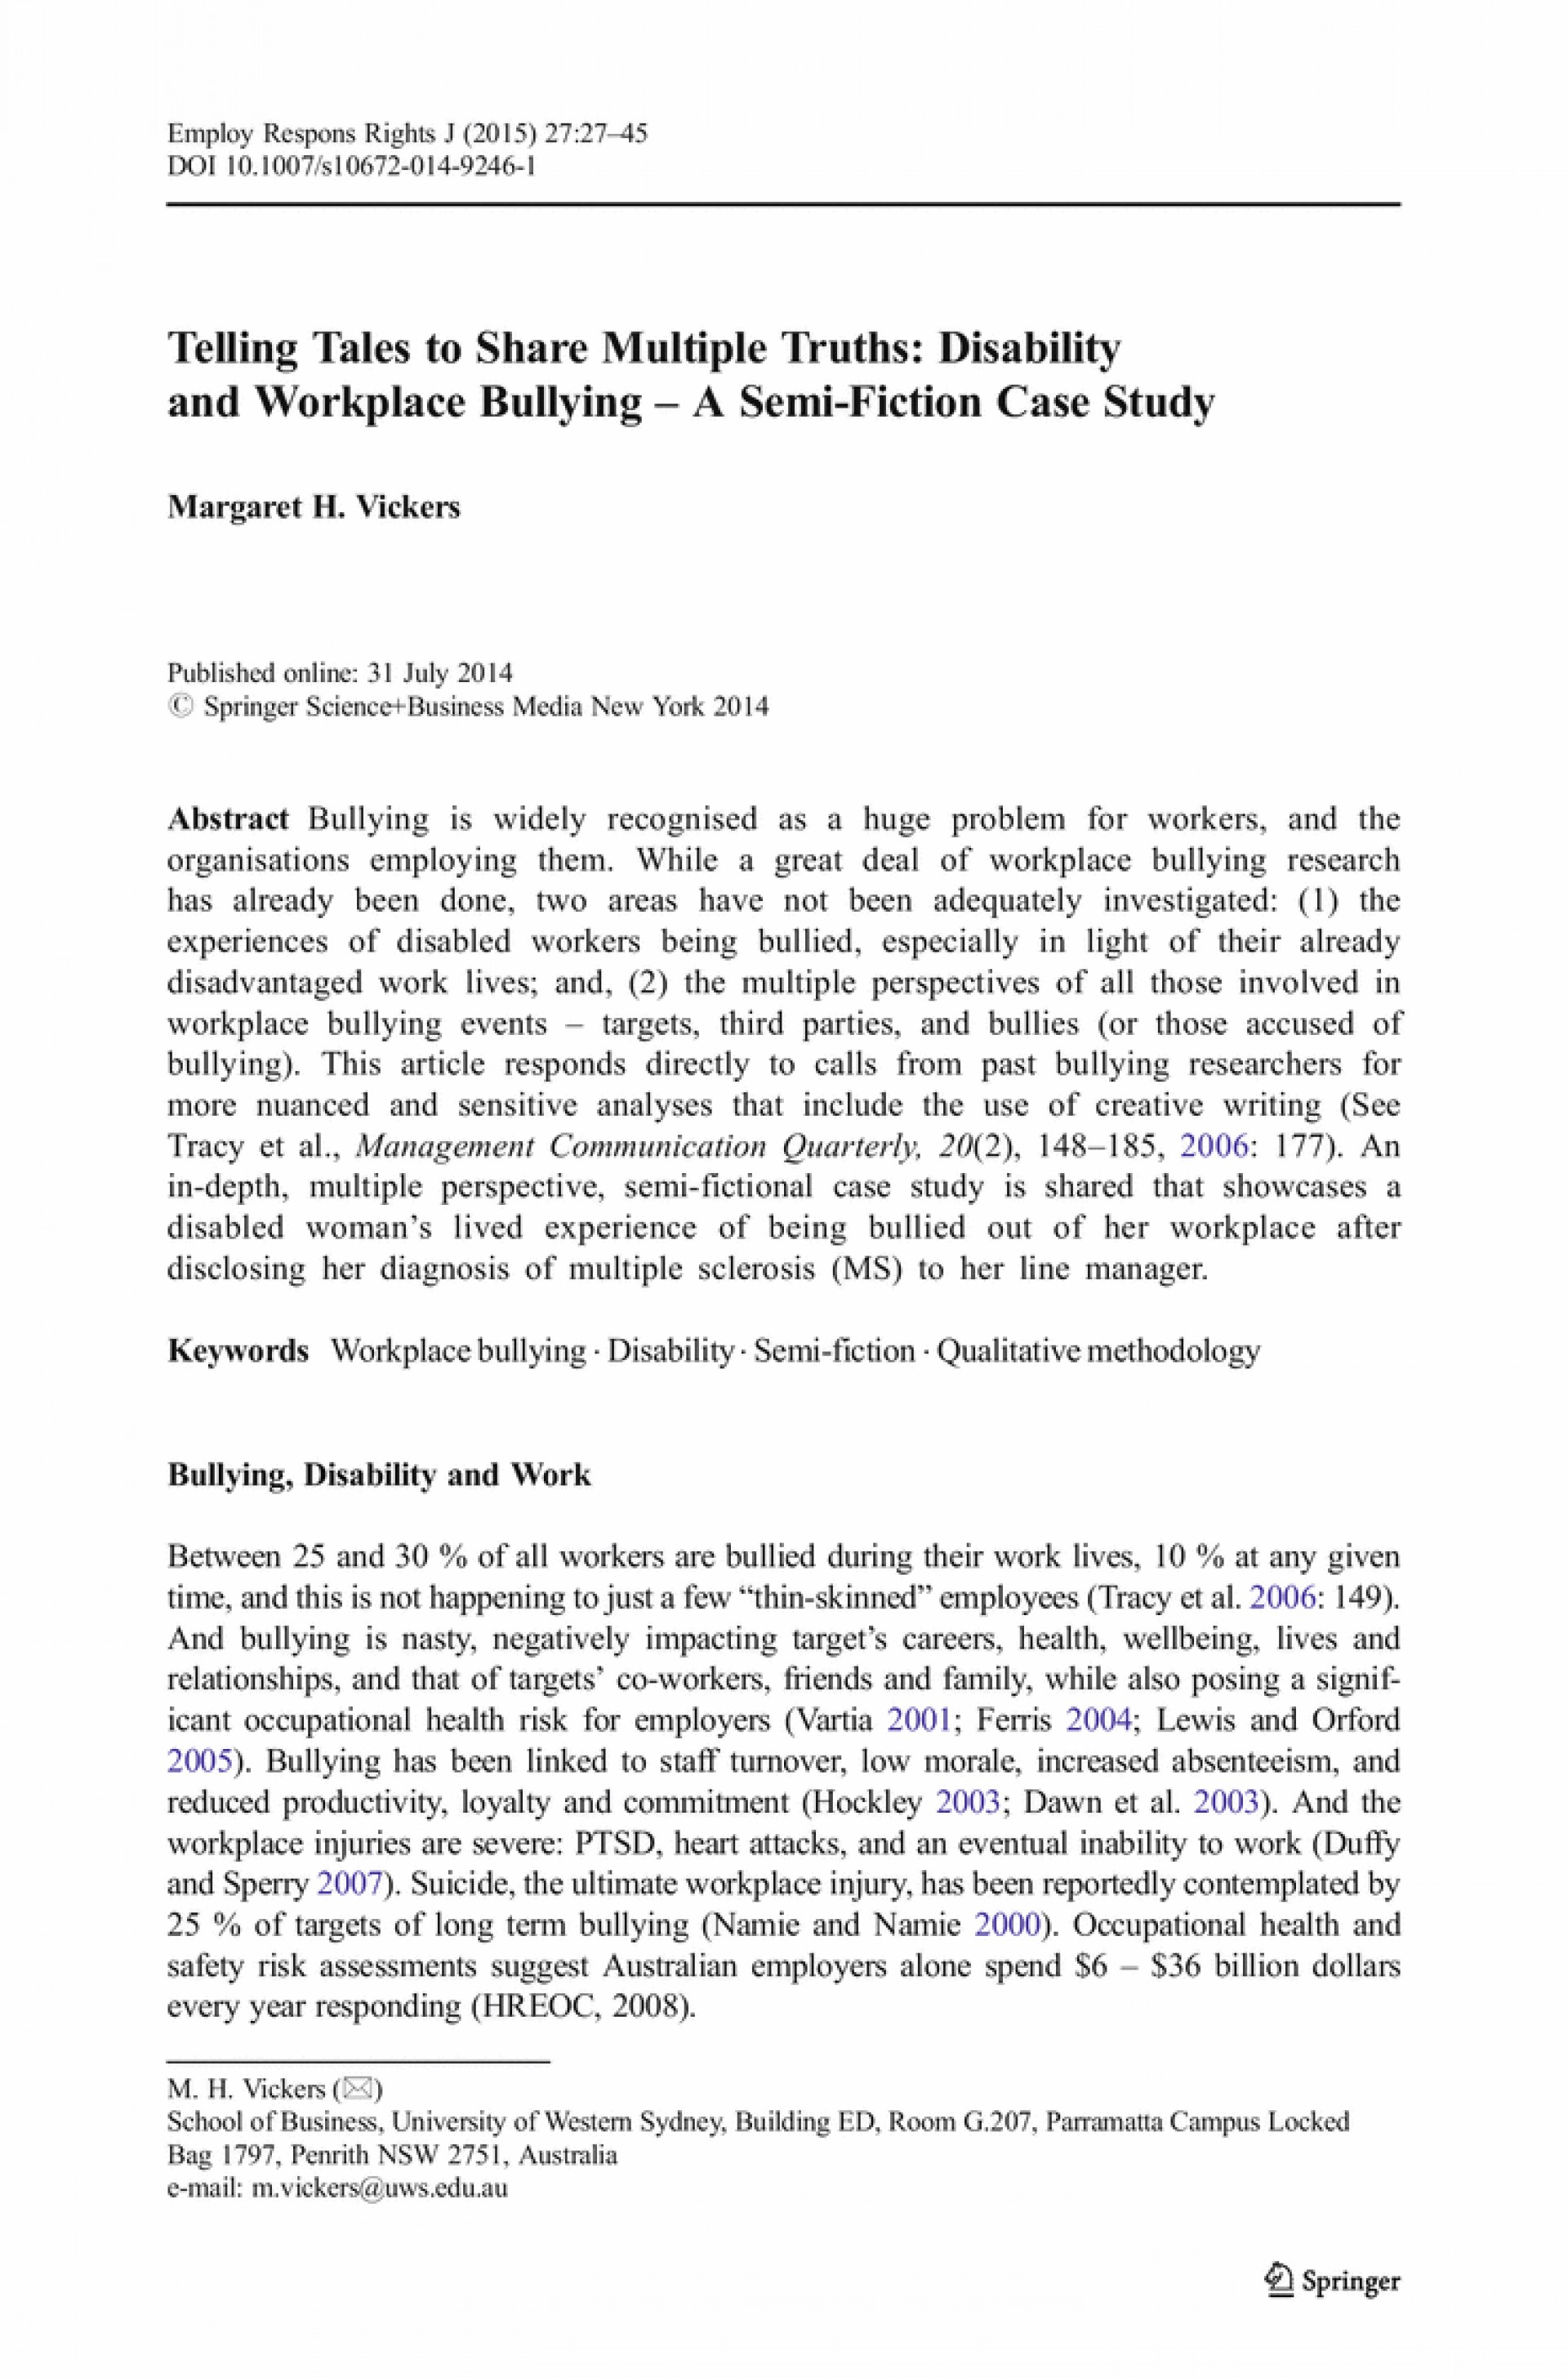 conclusion essay about bullying  applydocoumentco  outline of research paper pdf narrative essay bullying